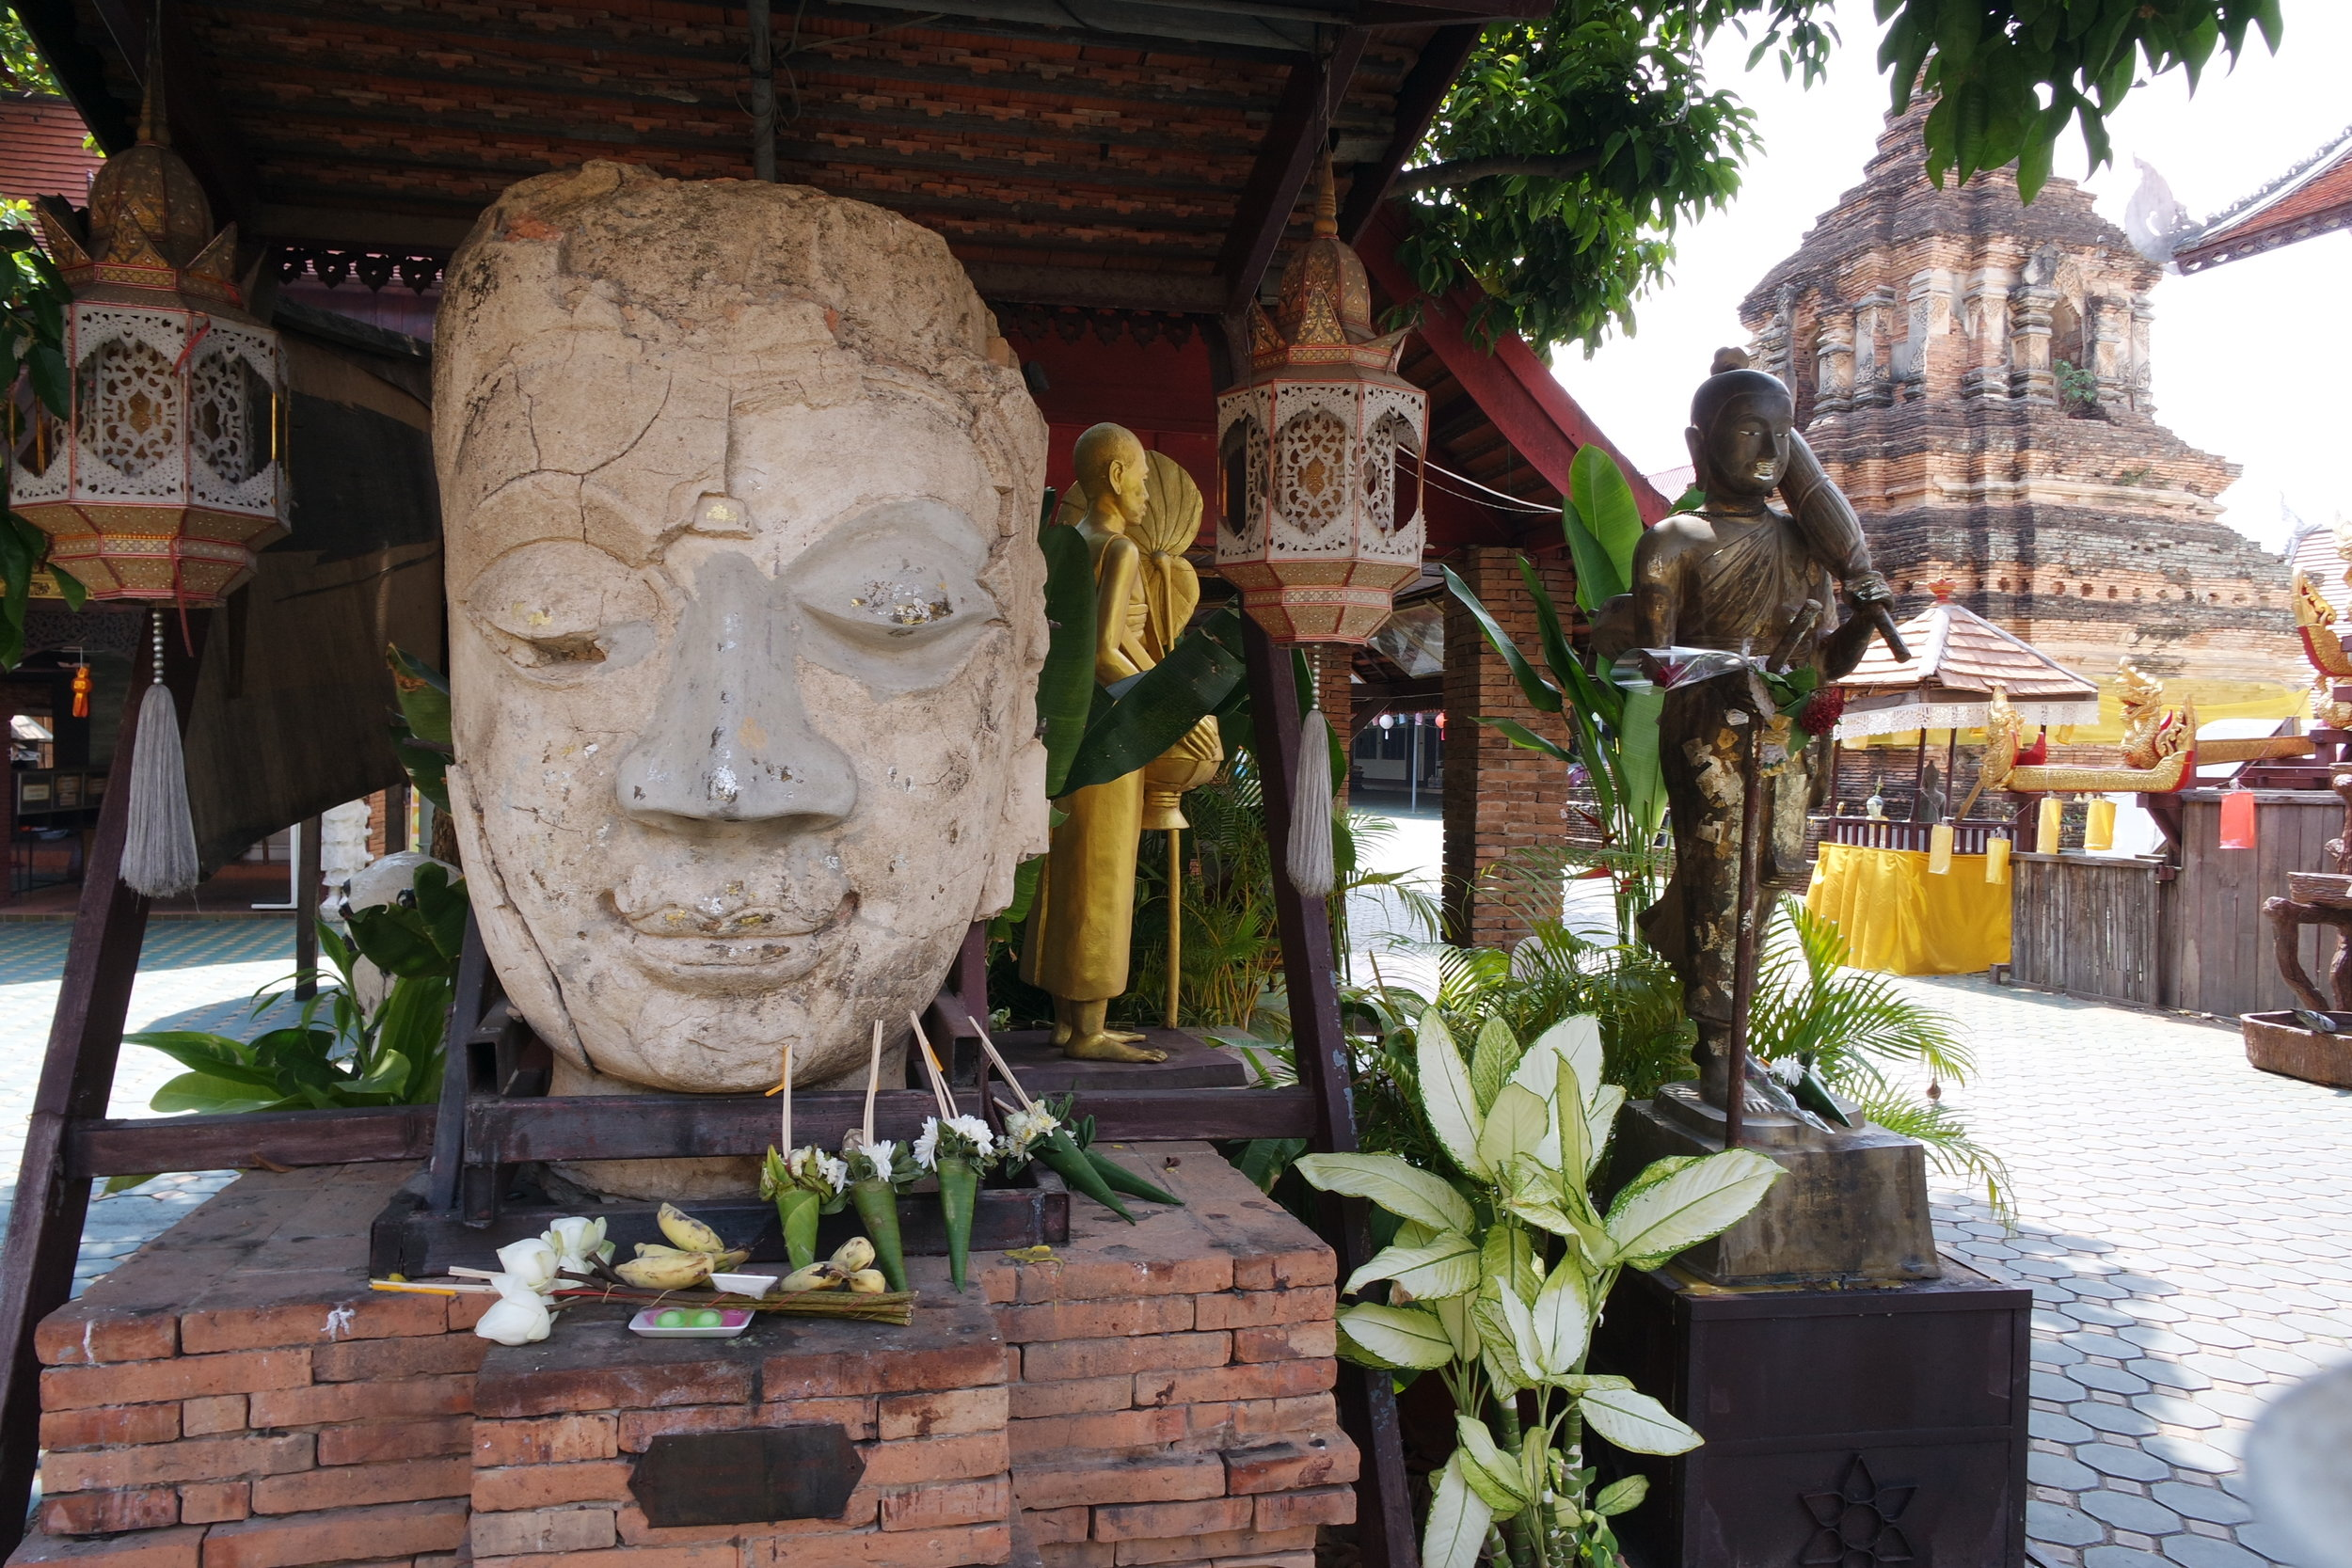 A giant Buddha head greets visitors to Wat Jetlin